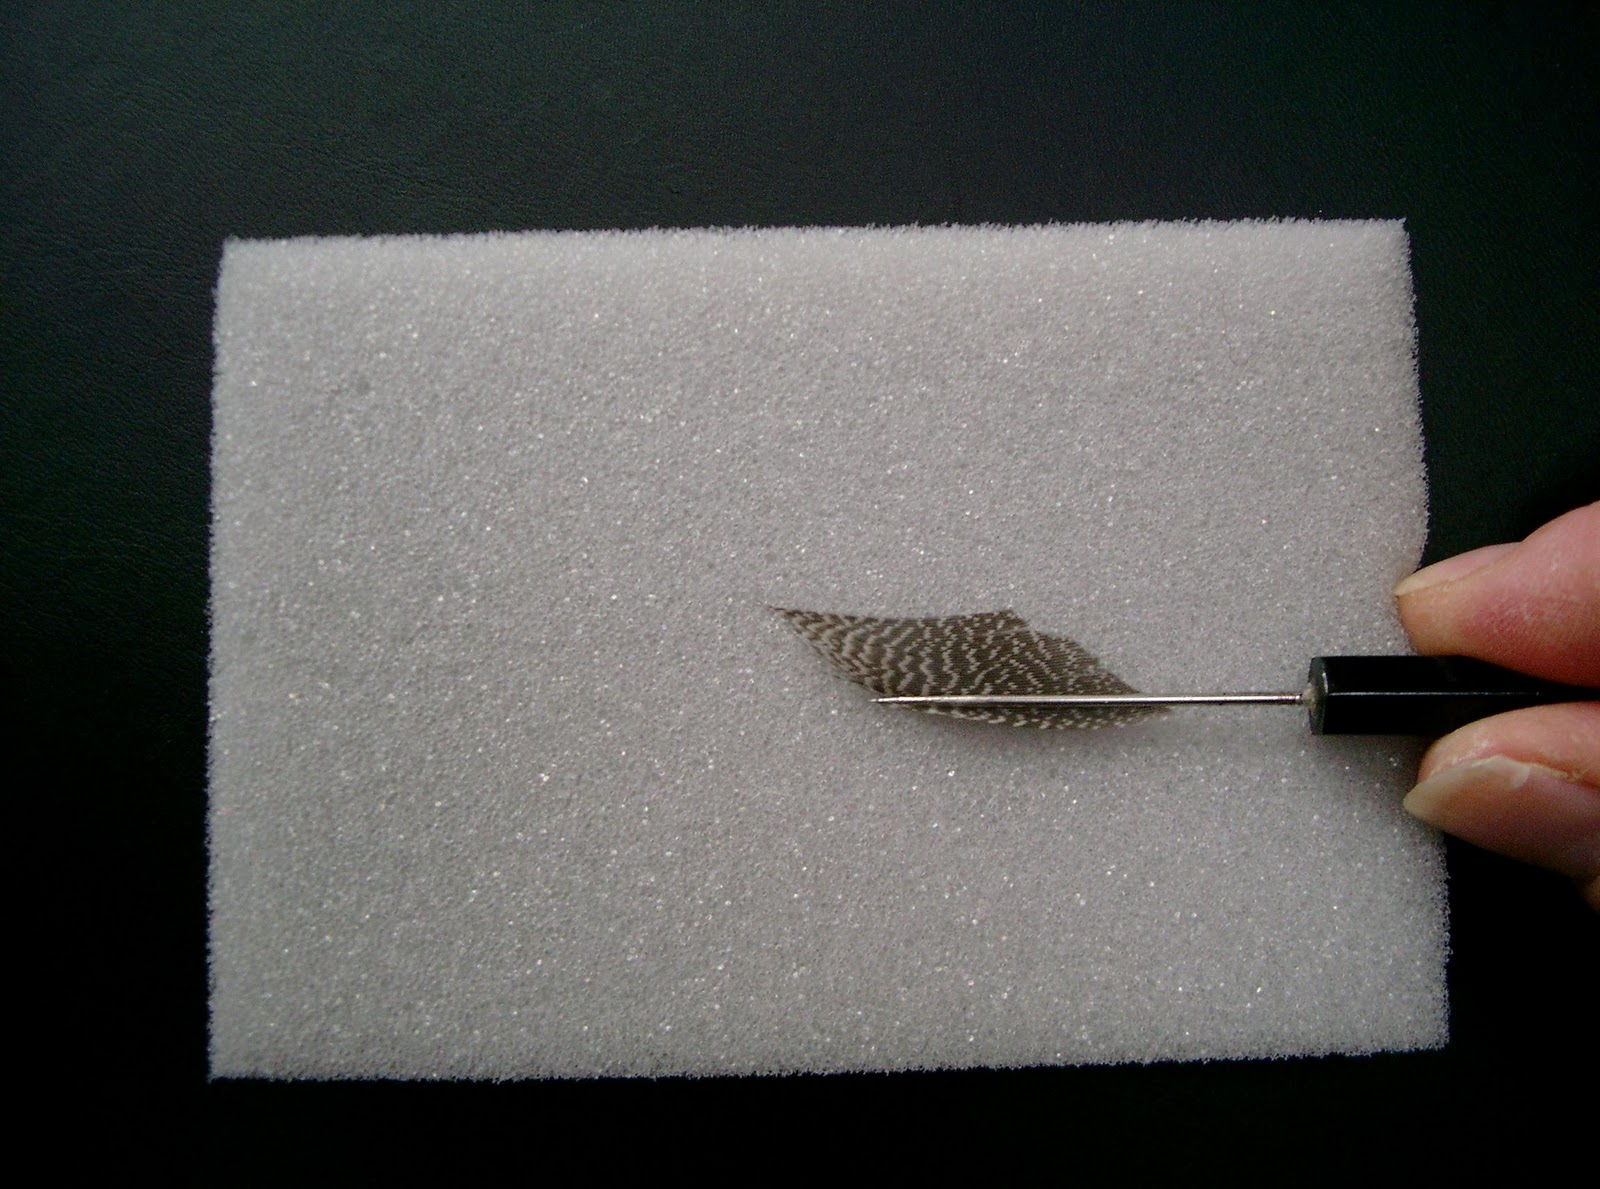 Fly tying world articles 4 use your finger to flatten the feather nvjuhfo Choice Image